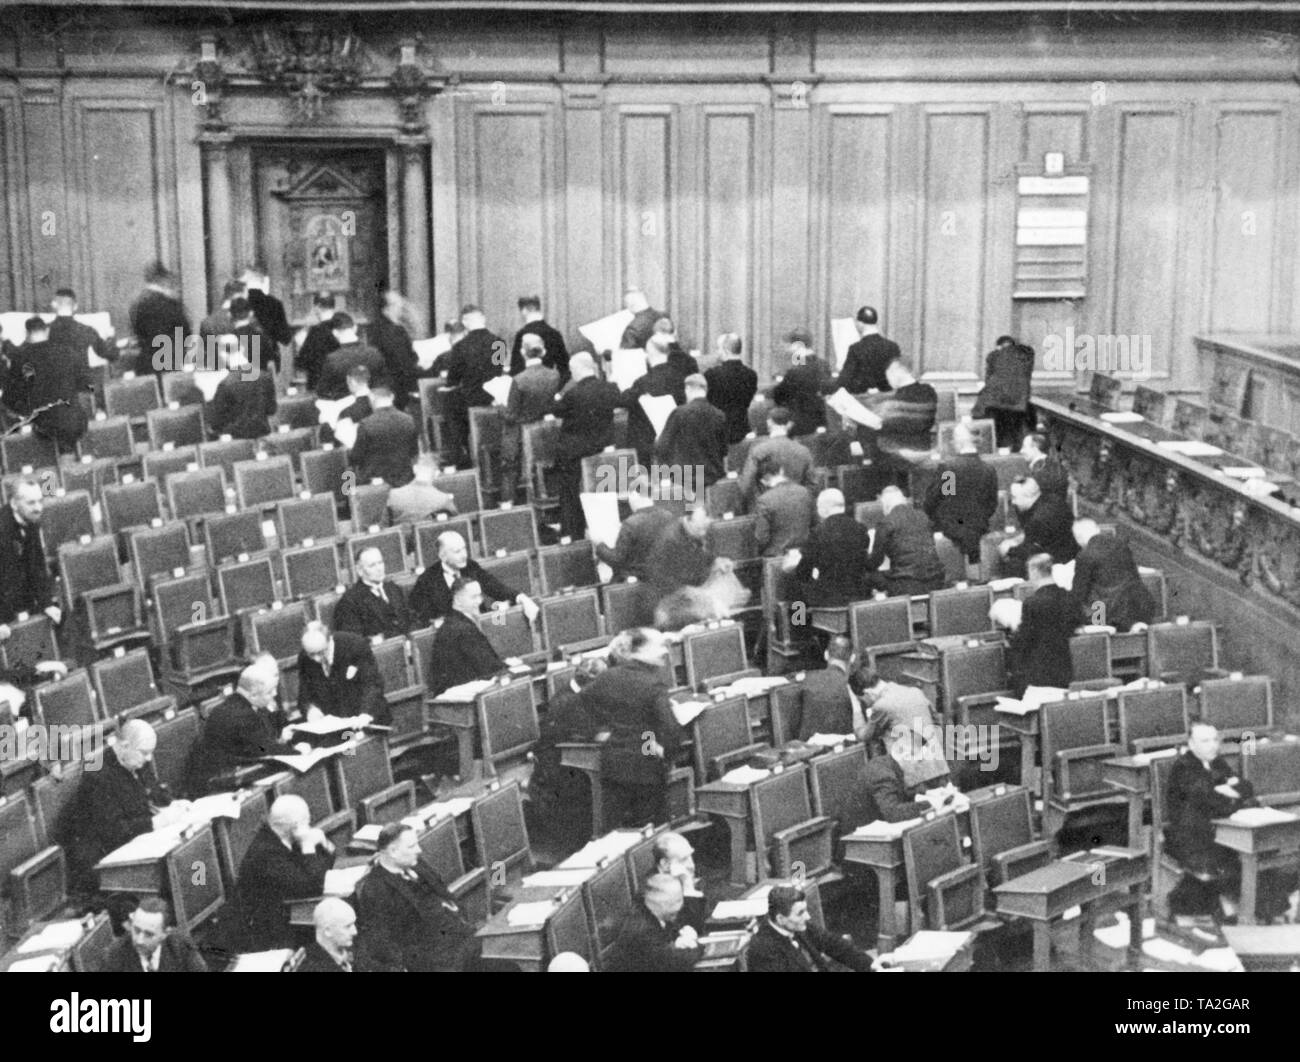 During the speech of Dr. Loewenthal, the fractional members of the NSDAP demonstratively turned their backs on the speaker. Only Vice-President Franz Stoehr (far right) is looking at the lectern, Joseph Goebbels (right half of the picture, with his head resting on his arm) writes something on the bench of the person sitting behind him. Stock Photo